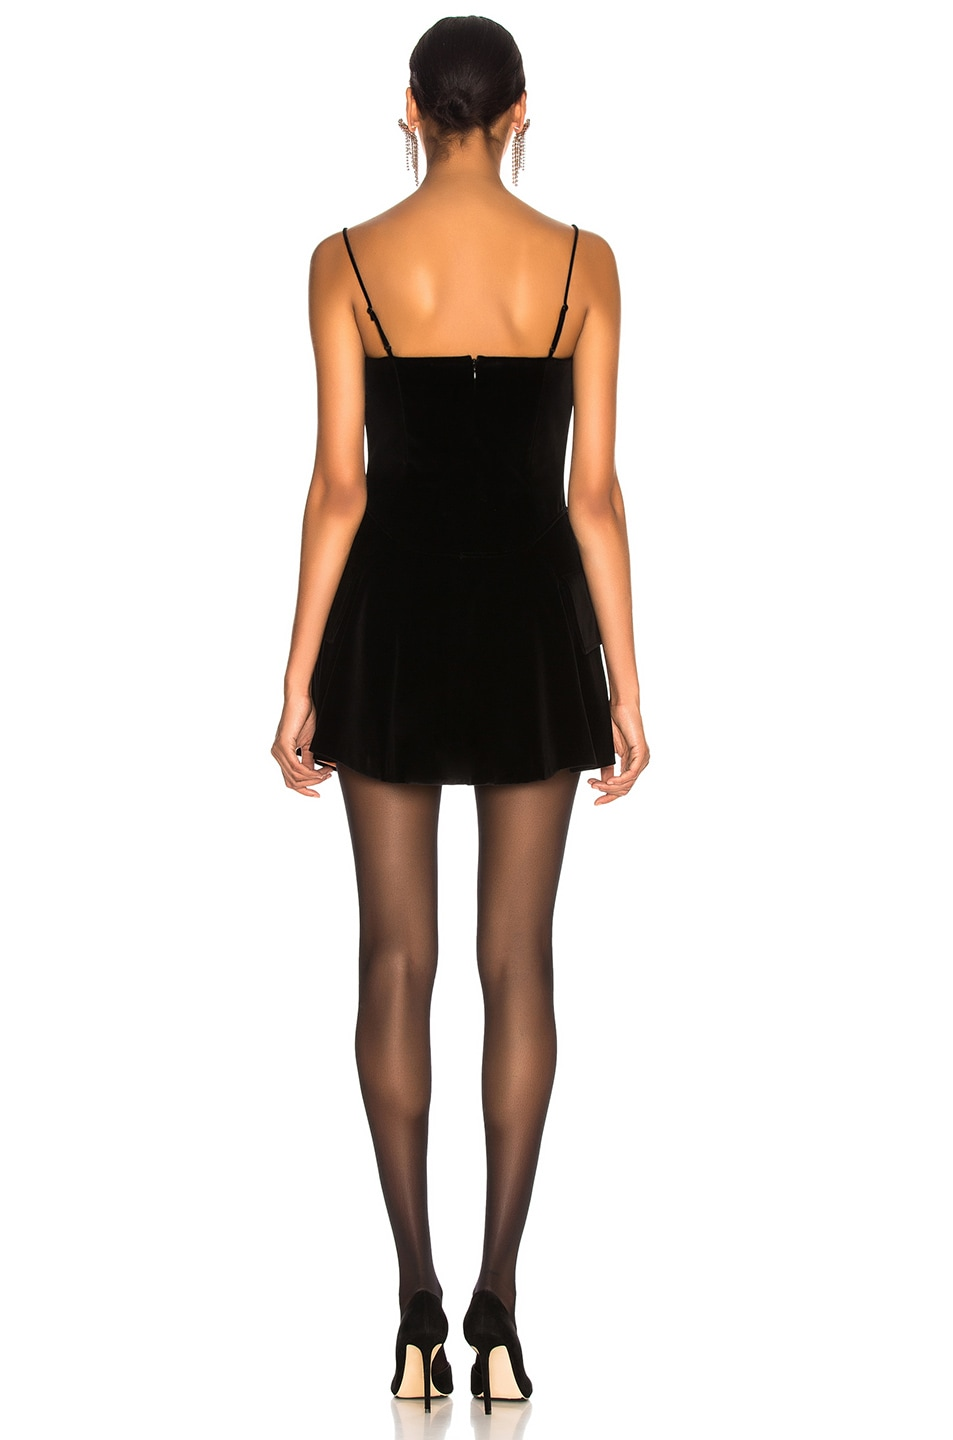 71ae3178be5 Image 3 of Alexander Wang Velvet Fit and Flare Mini Dress in Black